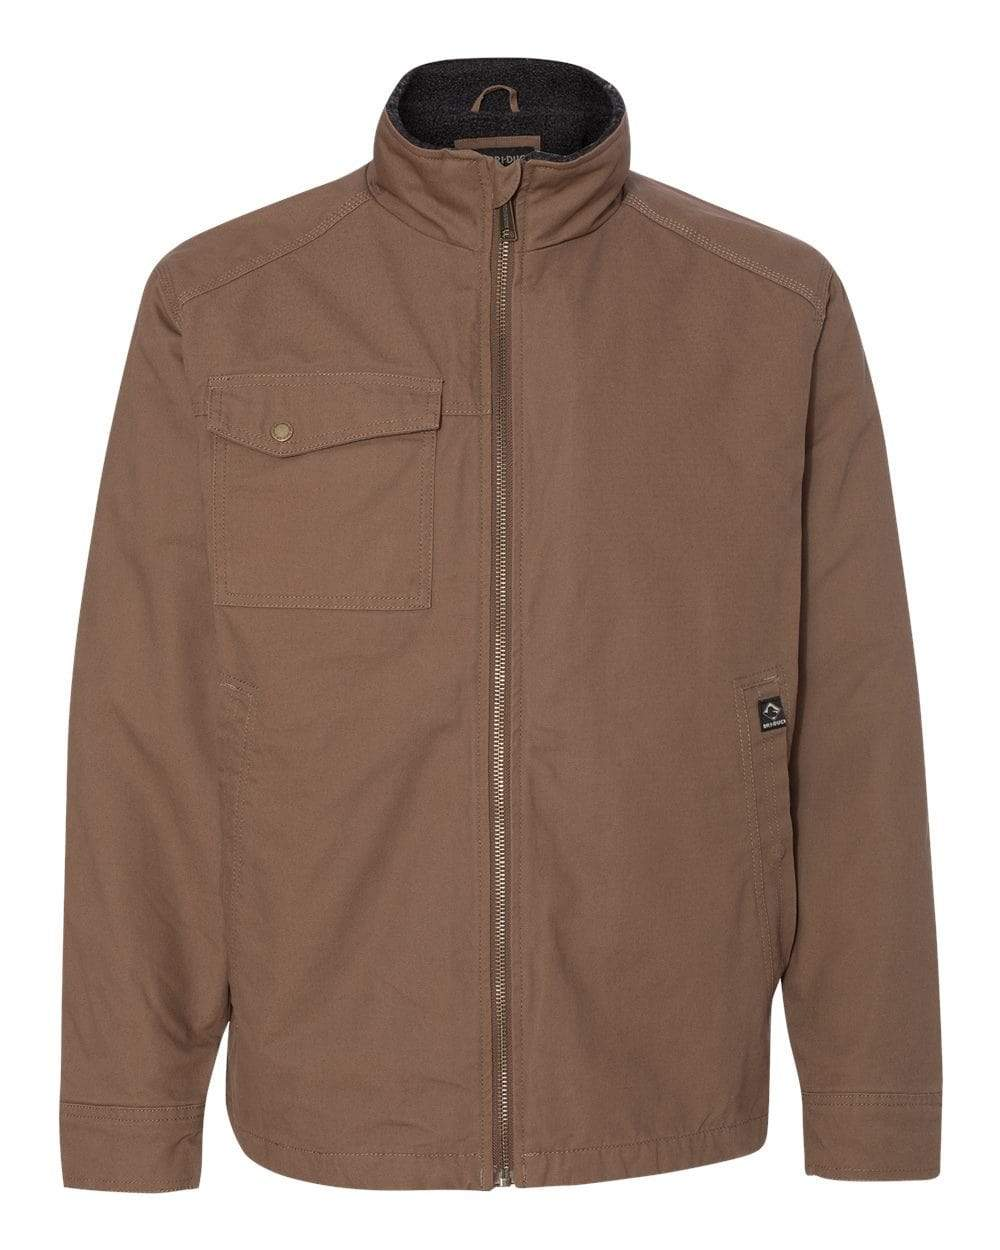 DRI DUCK Outerwear S / FIELD KHAKI DRI DUCK - Endeavor Canyon Cloth™ Canvas Jacket with Sherpa Lining